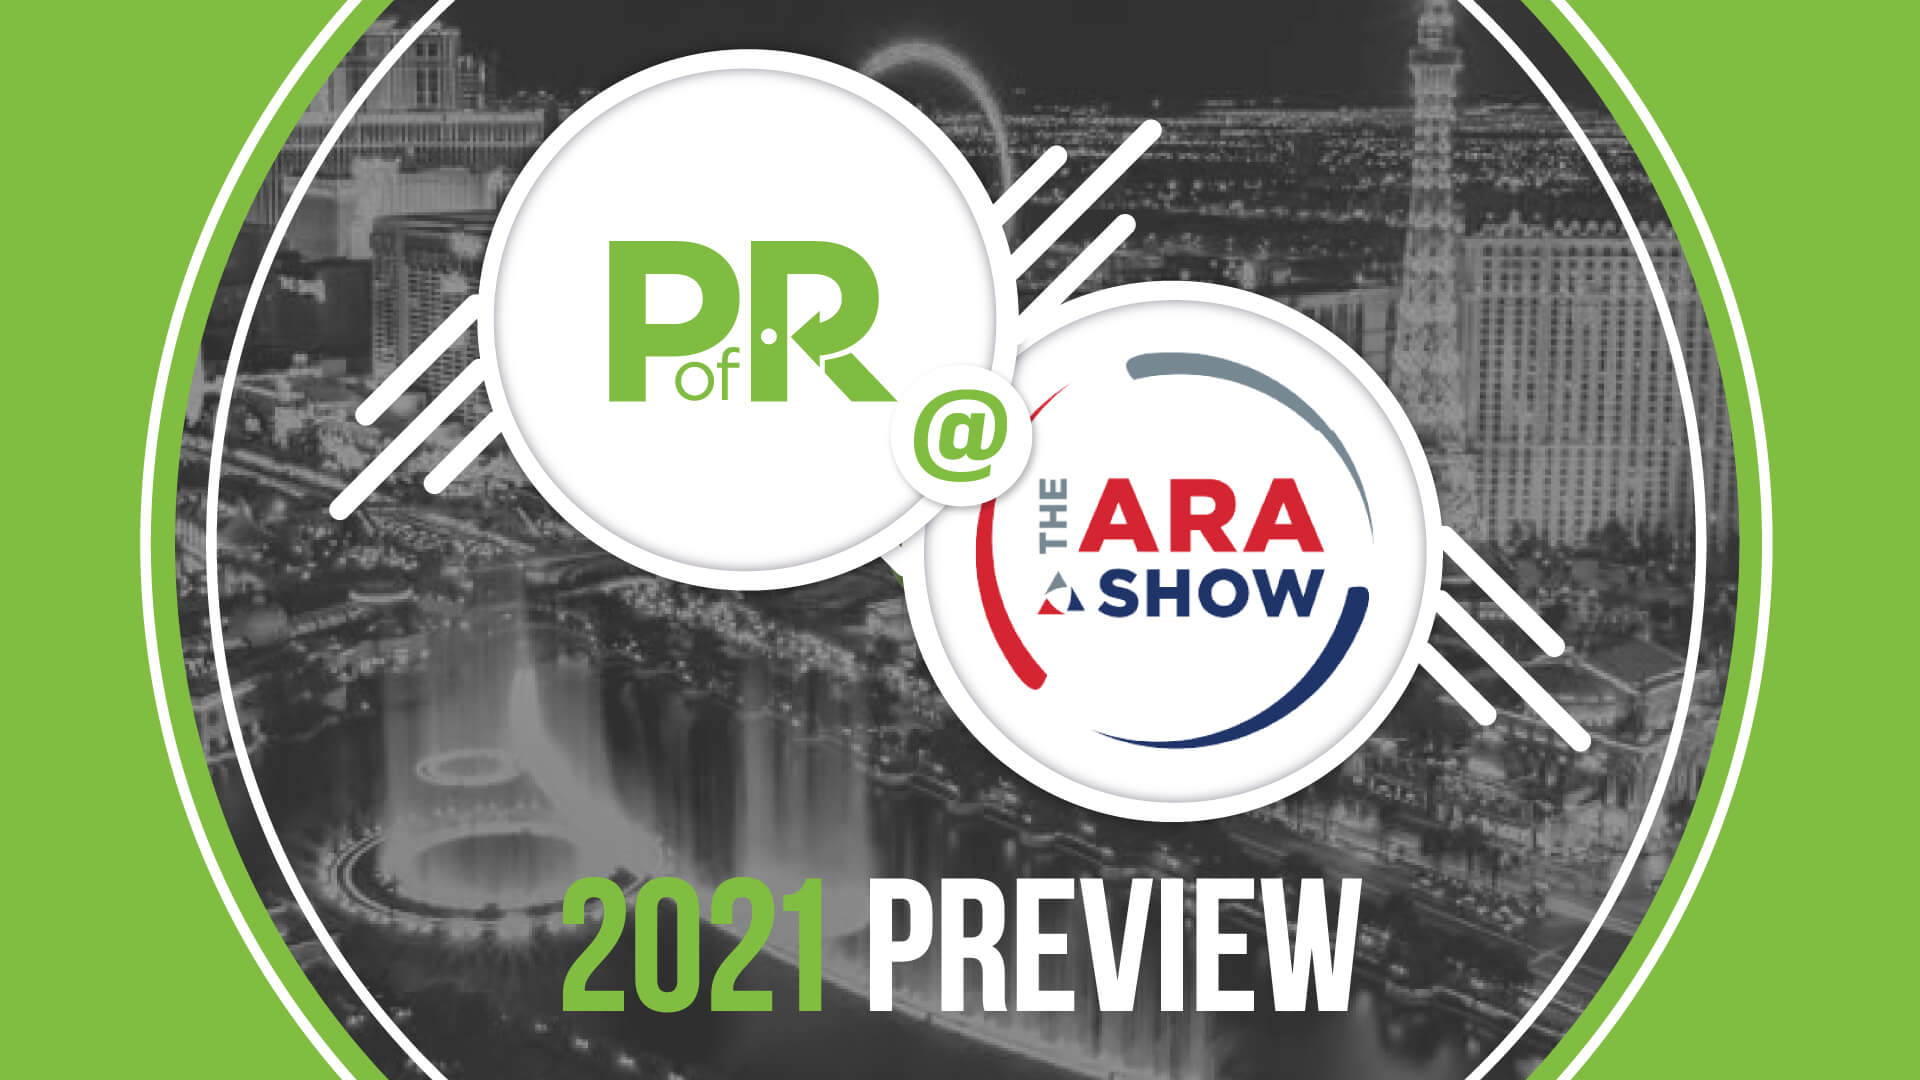 Point of Rental @ the 2021 ARA Show preview graphic